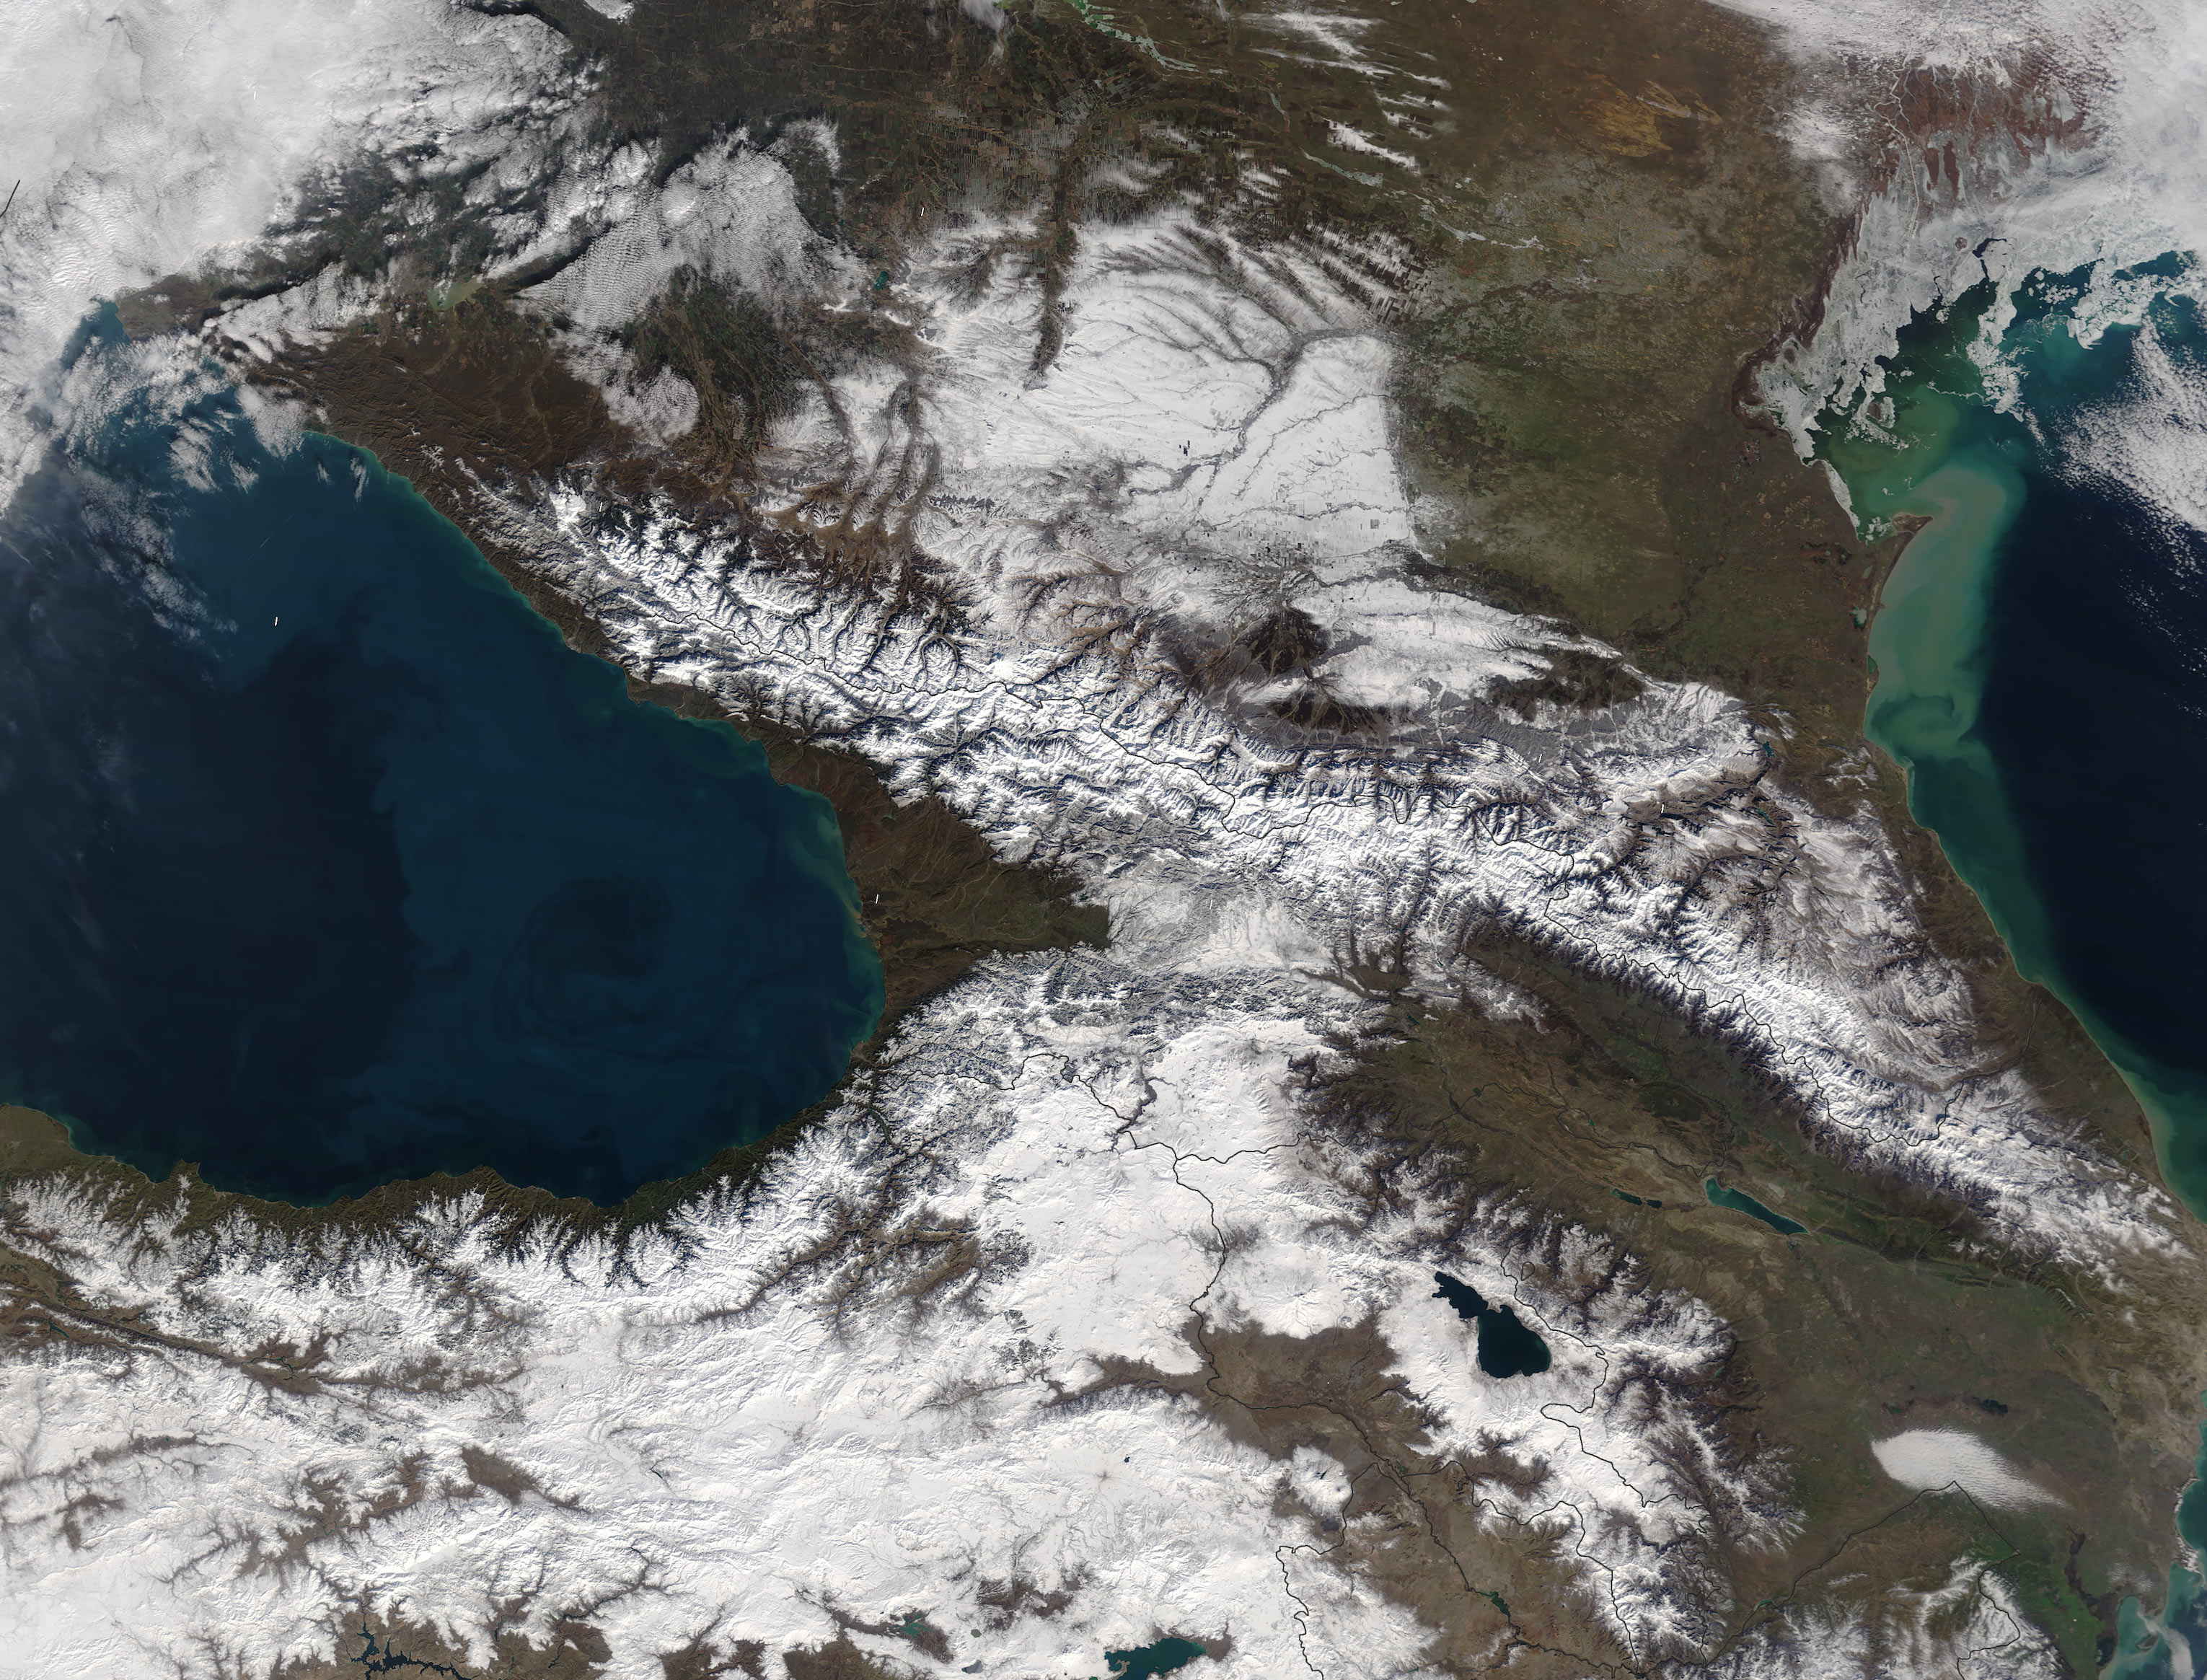 Today's Image of the Day comes from the NASA Earth Observatory and features a look at the snow-covered Caucasus Mountains in Russia during winter.